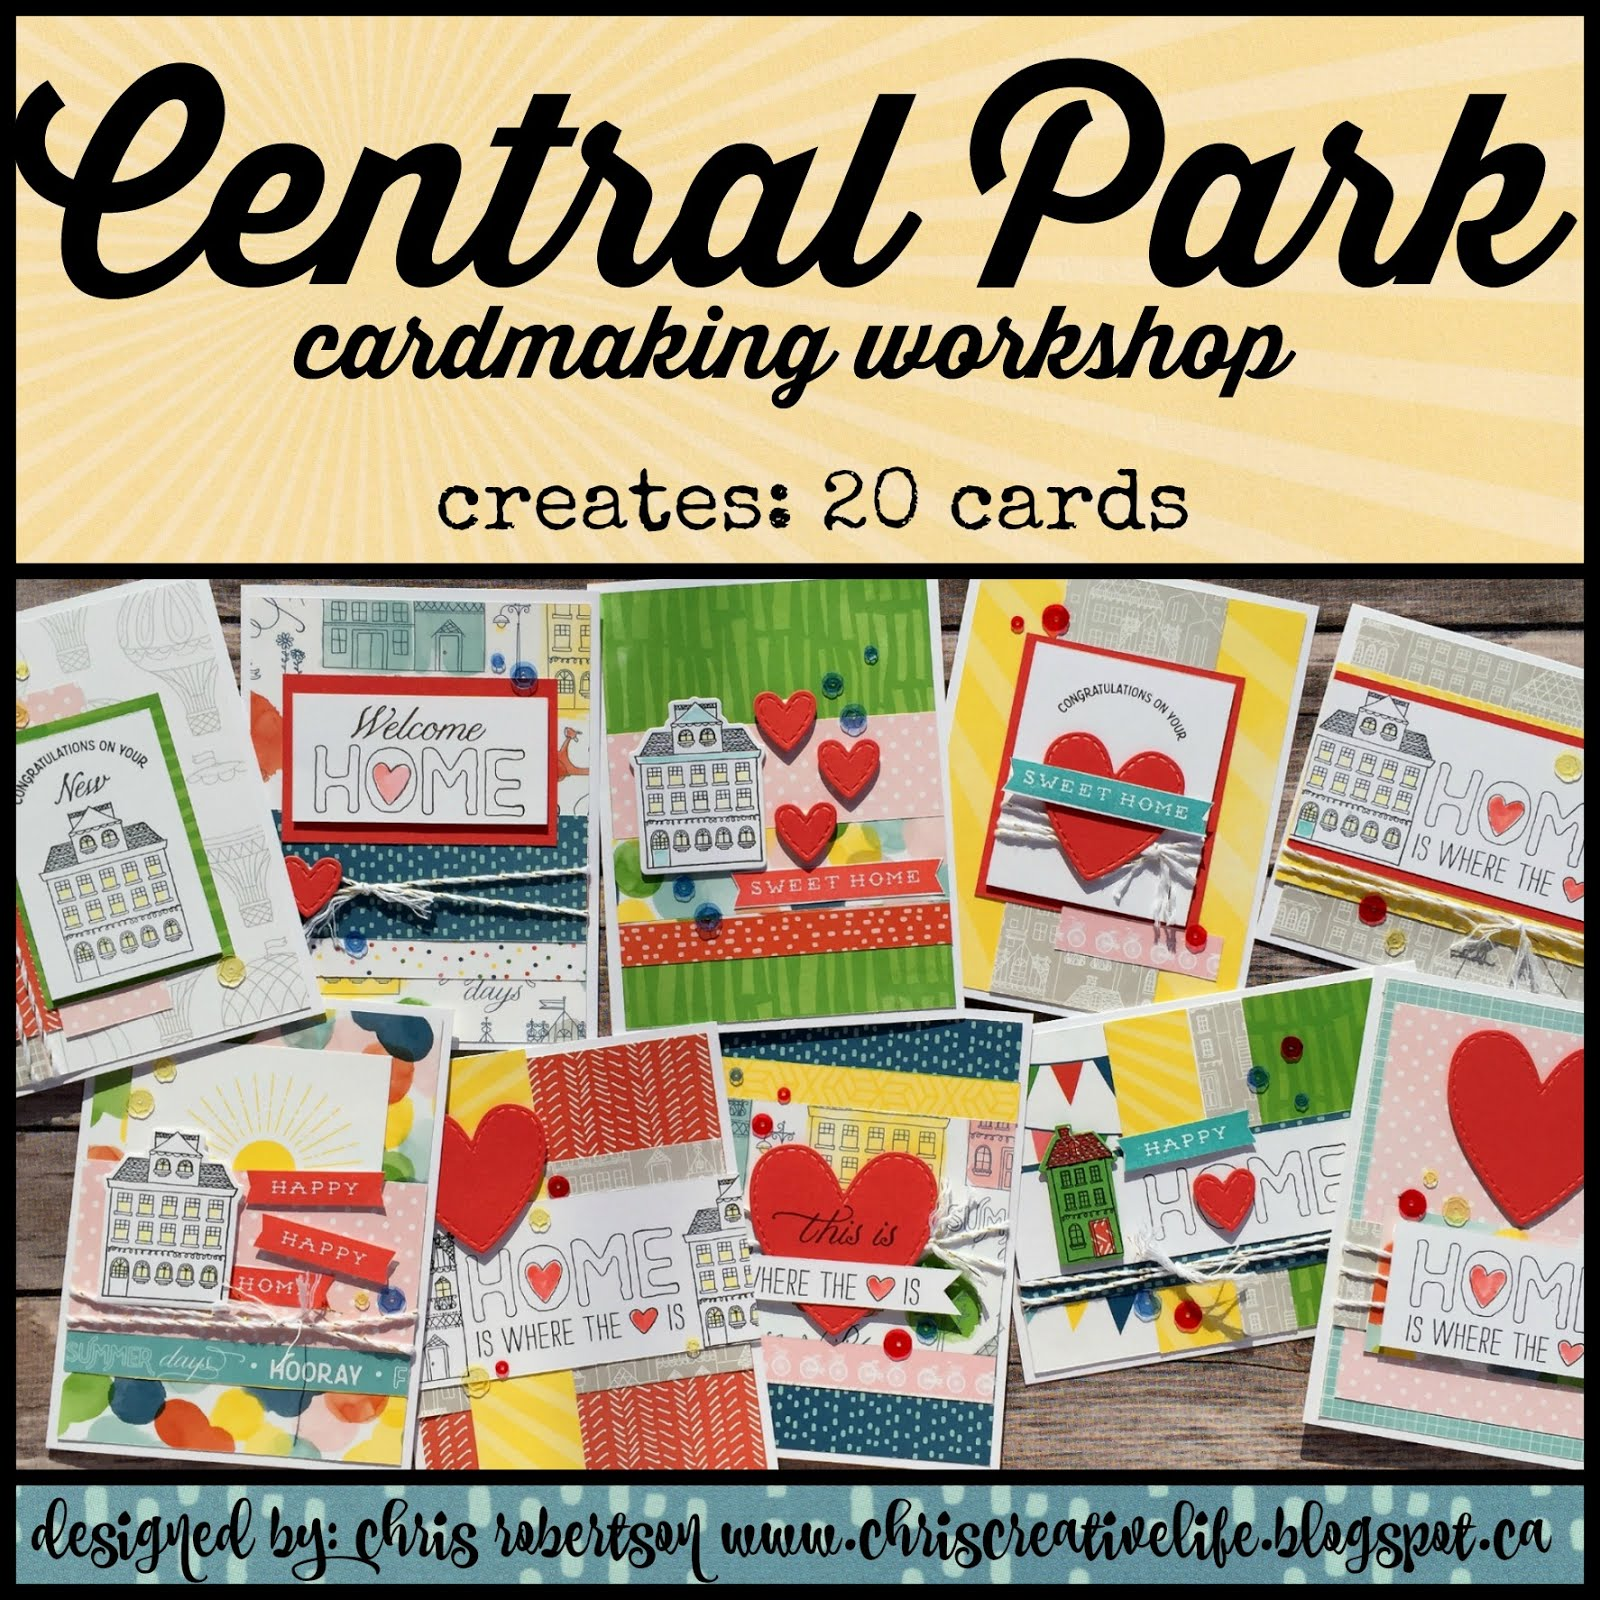 Central Park Cardmaking Workshop